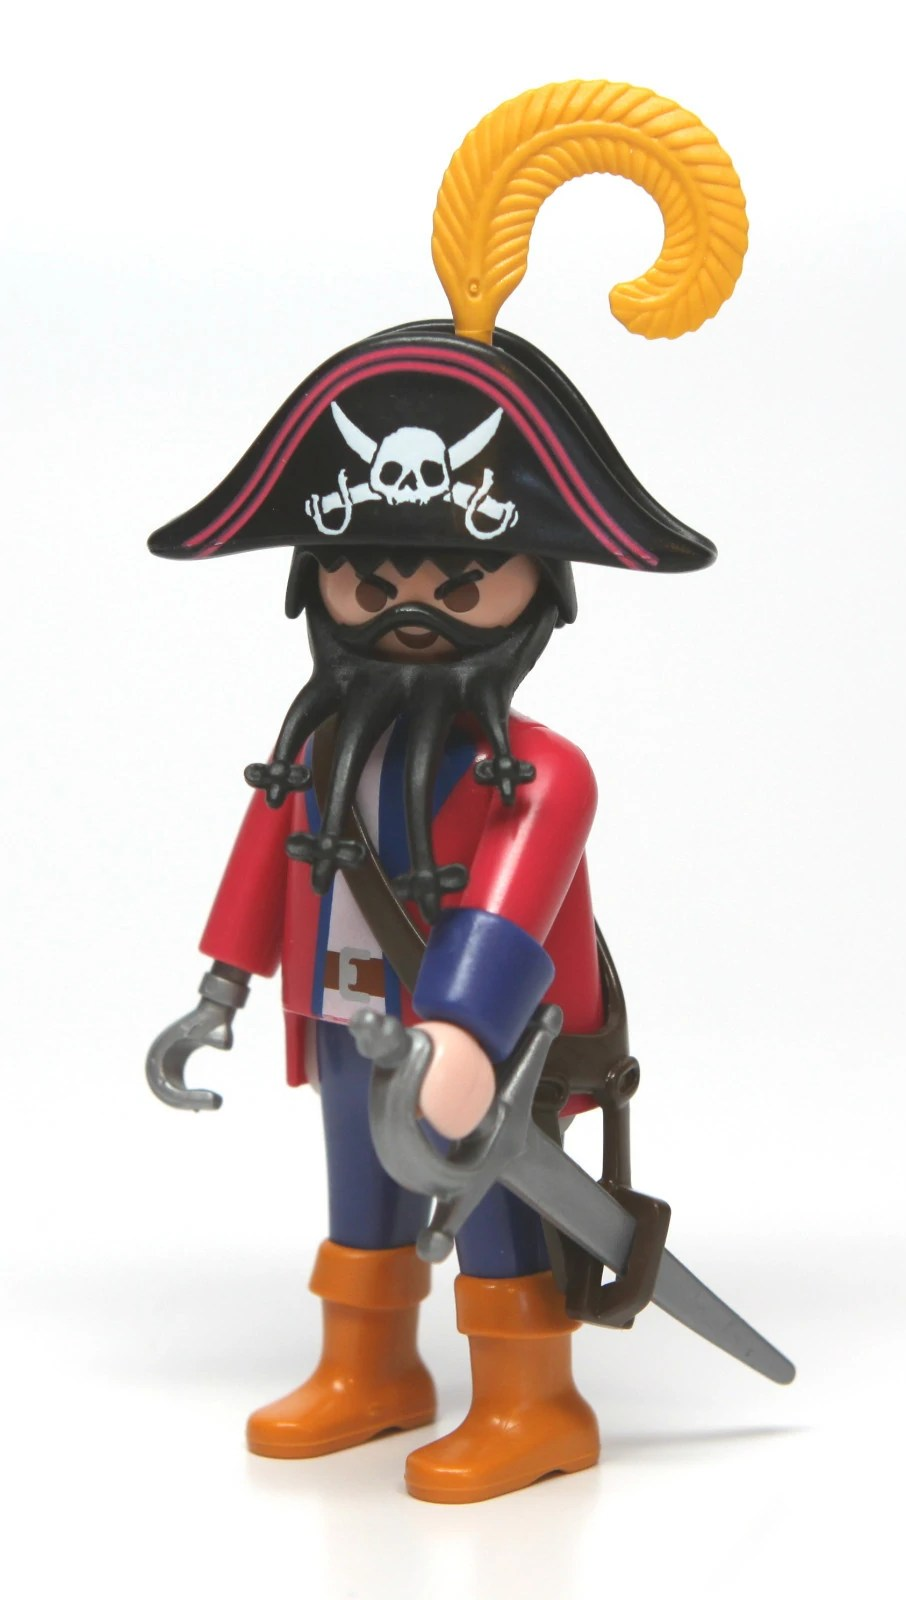 Playmobil 4806 Blackbeard John | Playmobil Wiki | Fandom Powered By Wikia